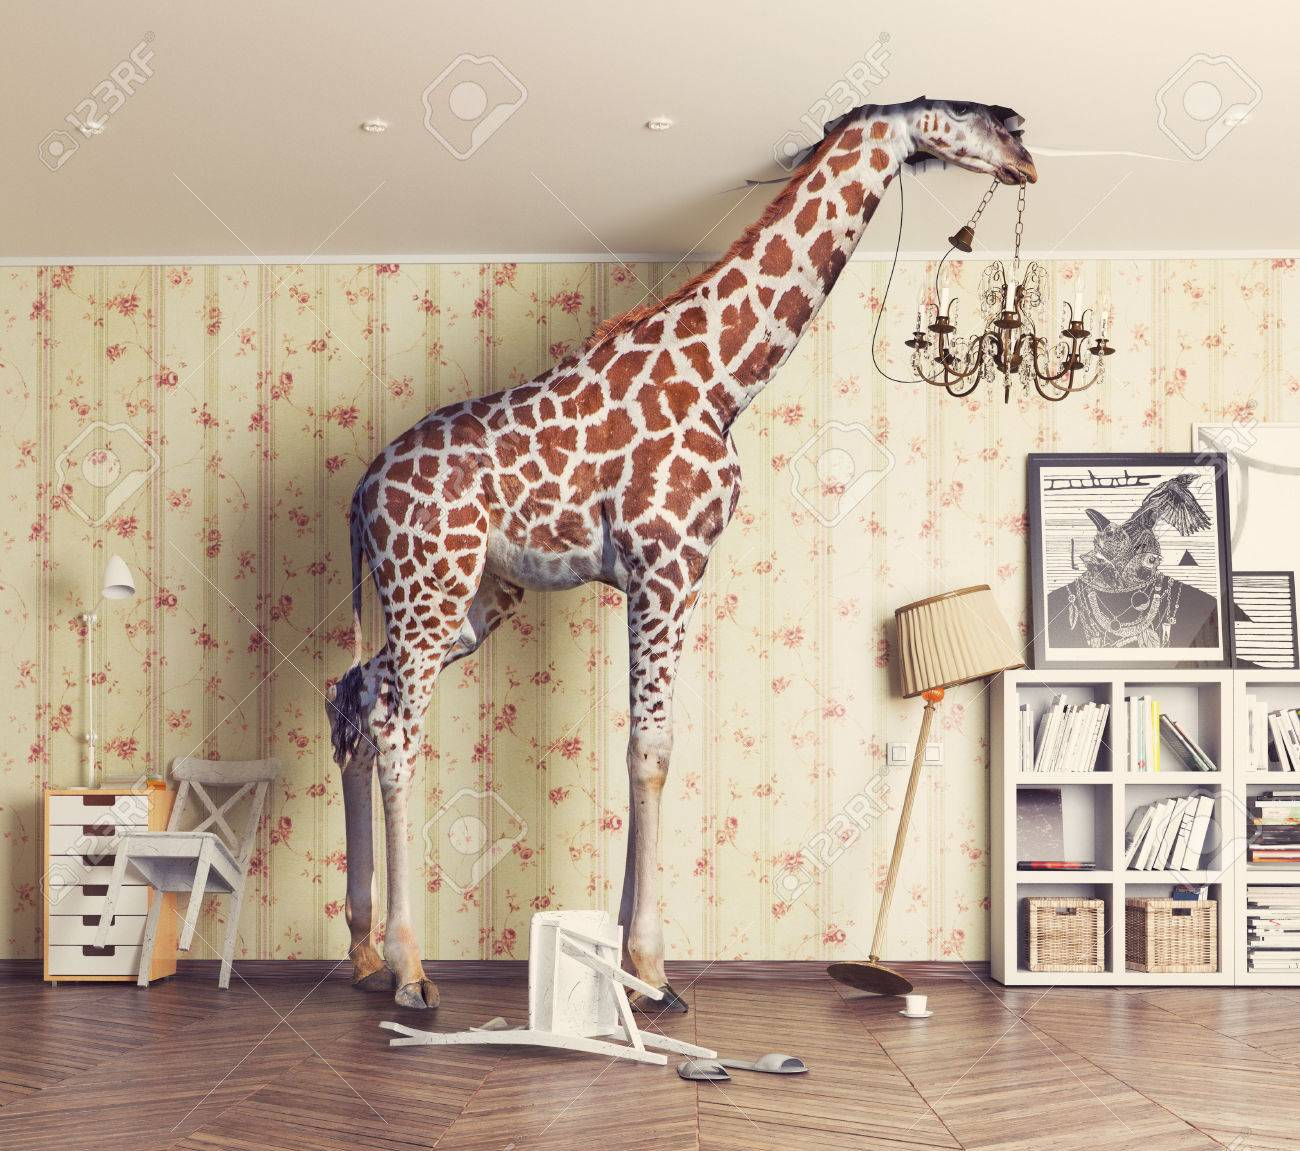 giraffe breaks the ceiling in the living room. Photography combination concept Standard-Bild - 64633956